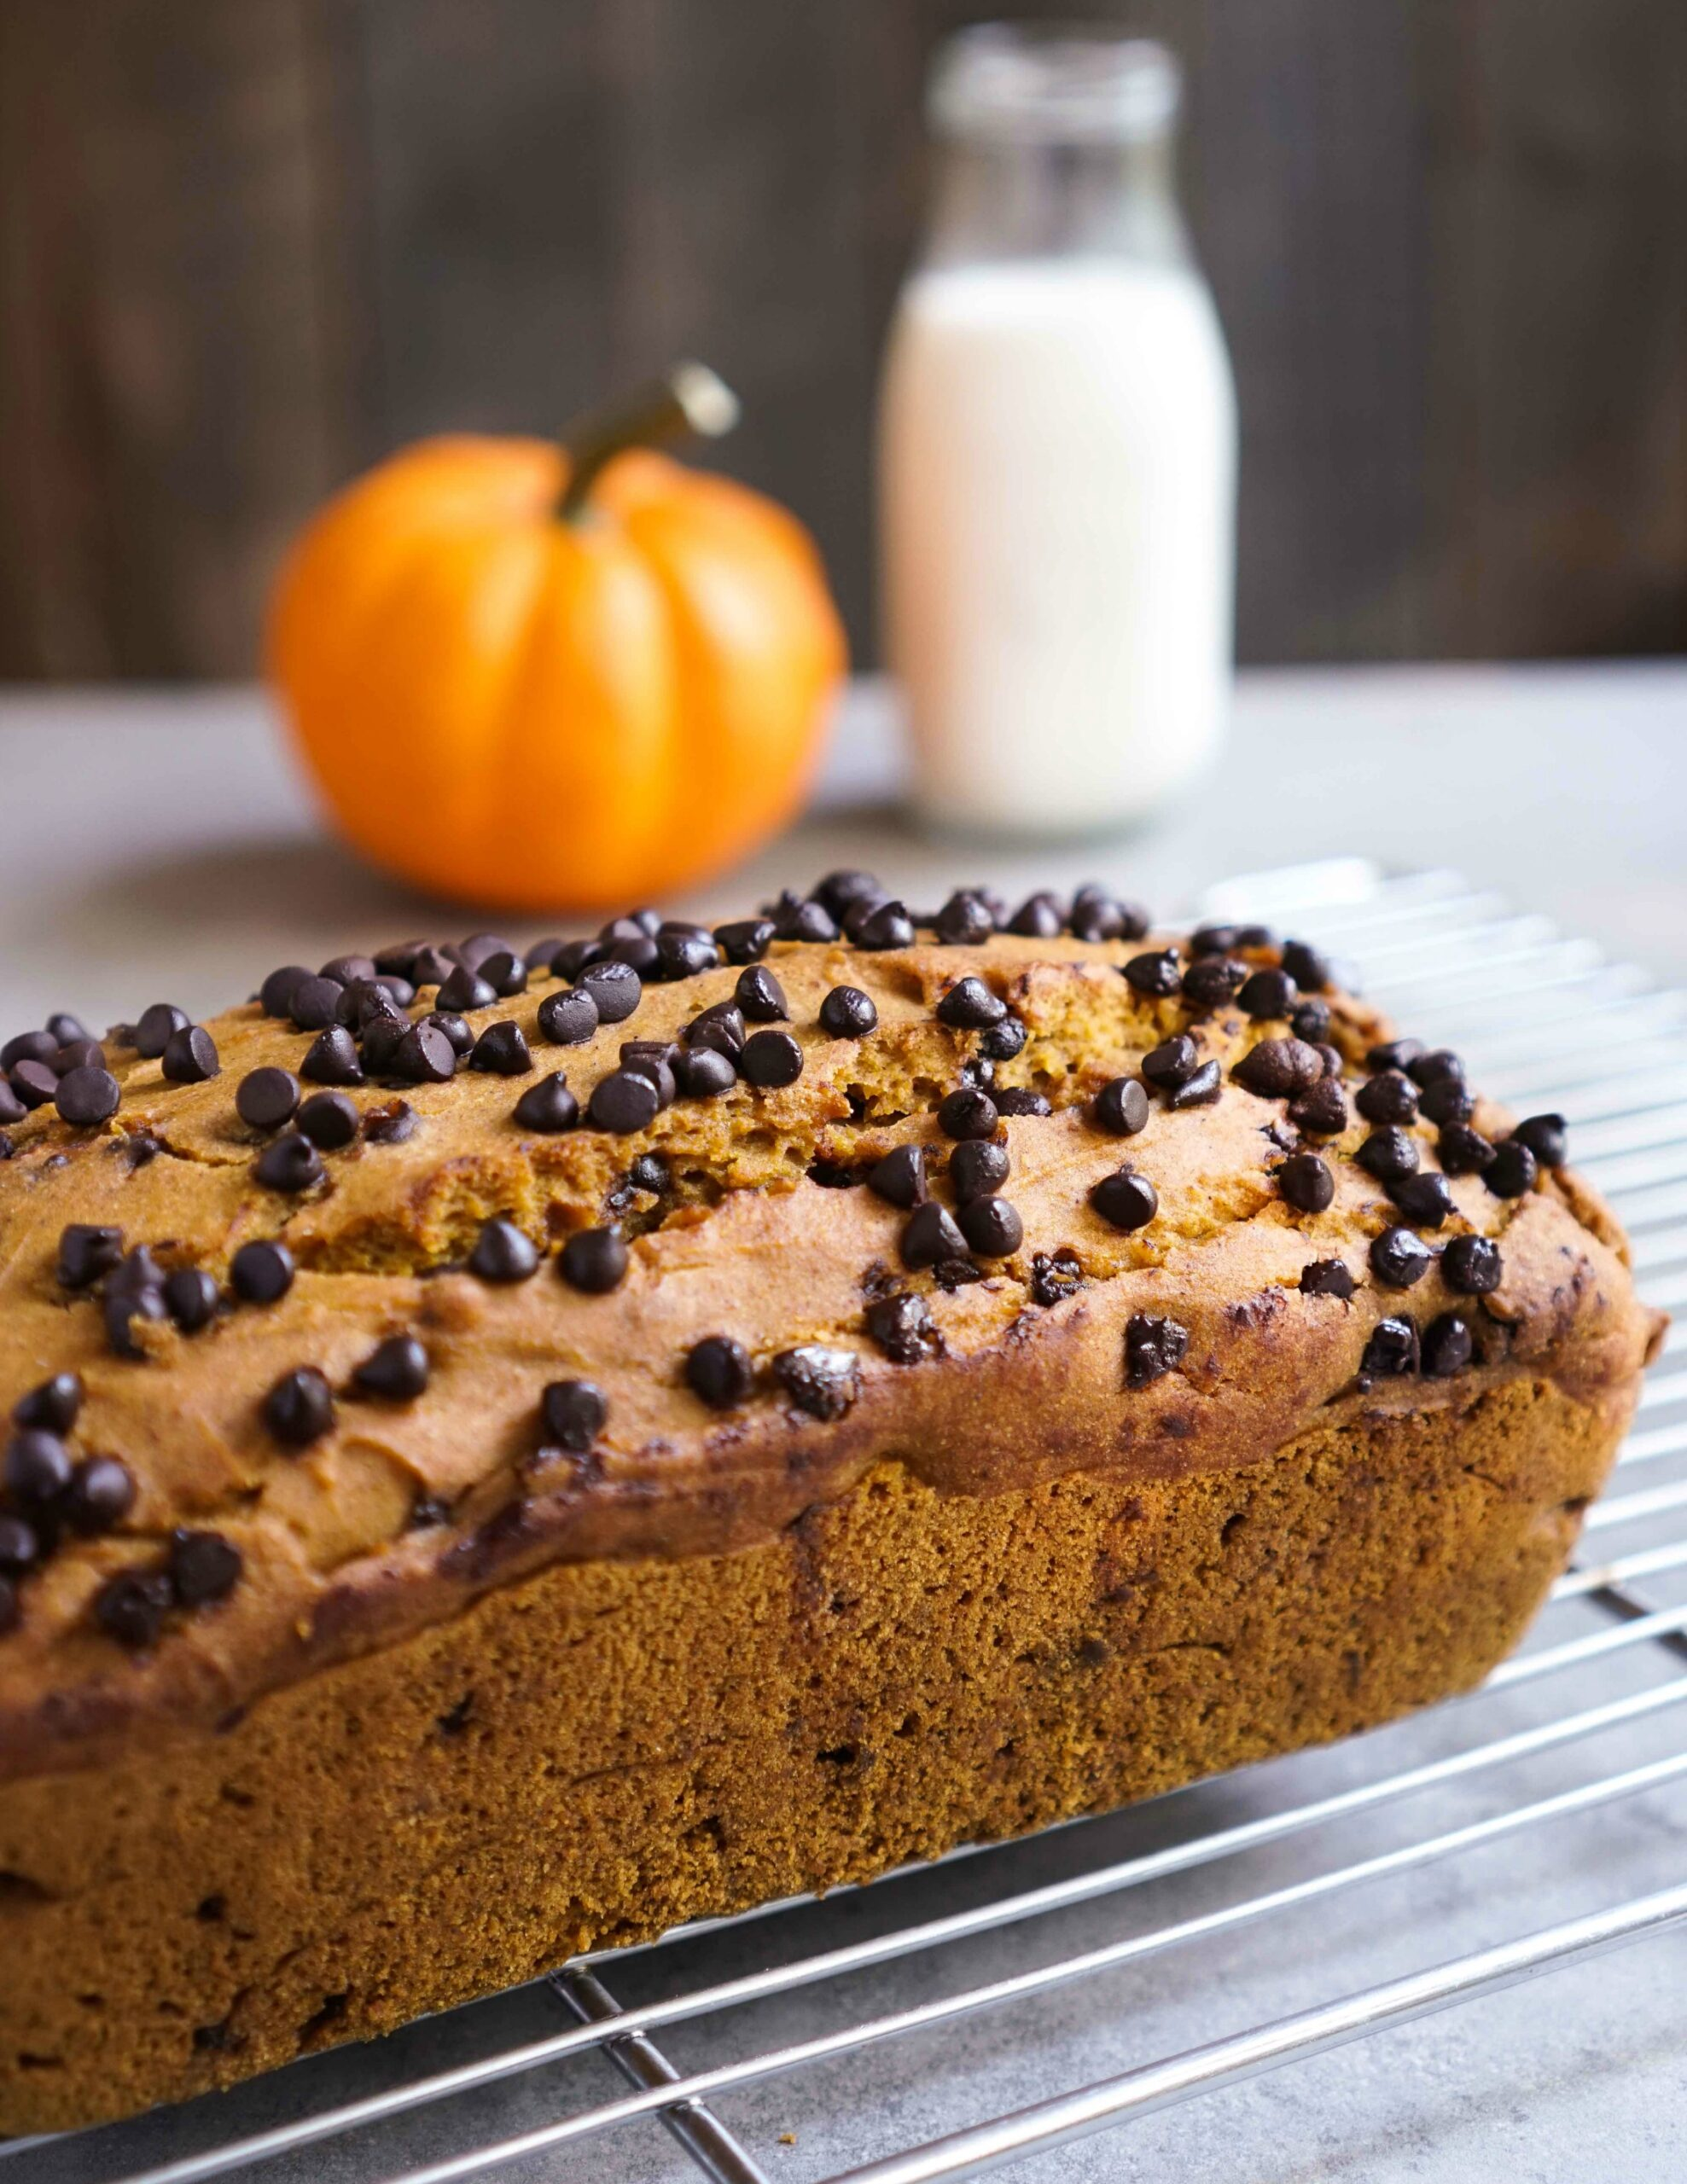 It doesn't get much better than this gluten-free chocolate chip pumpkin bread!